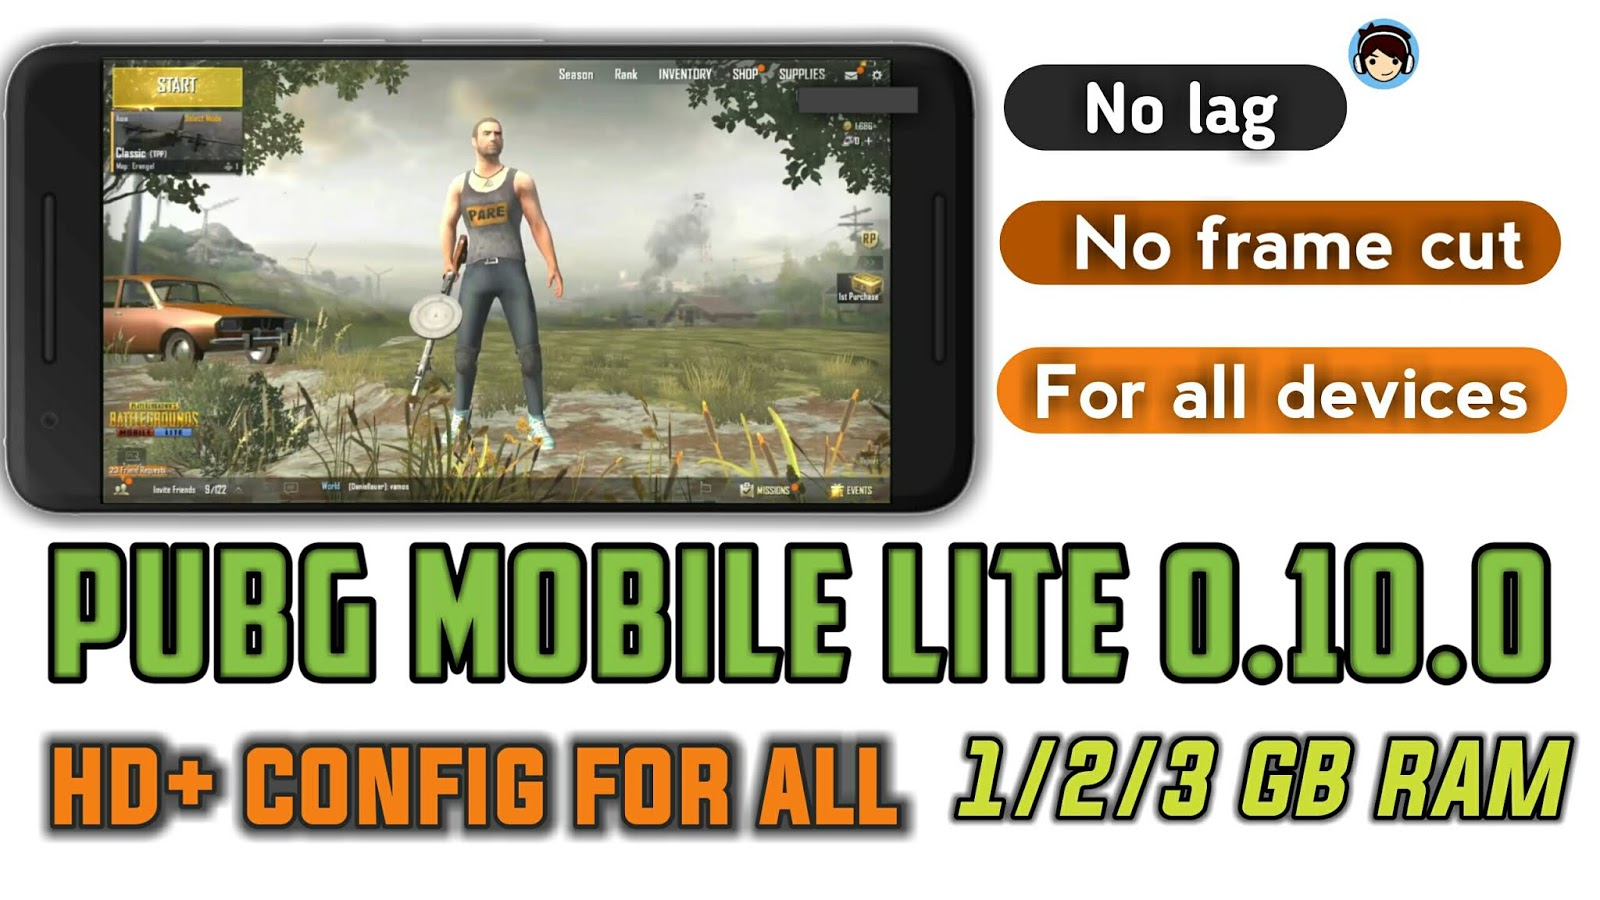 Pubg Mobile Lite 0 10 0 Hd Config Tech Vishesh - pubg mobile lite 0 10 0 hd config